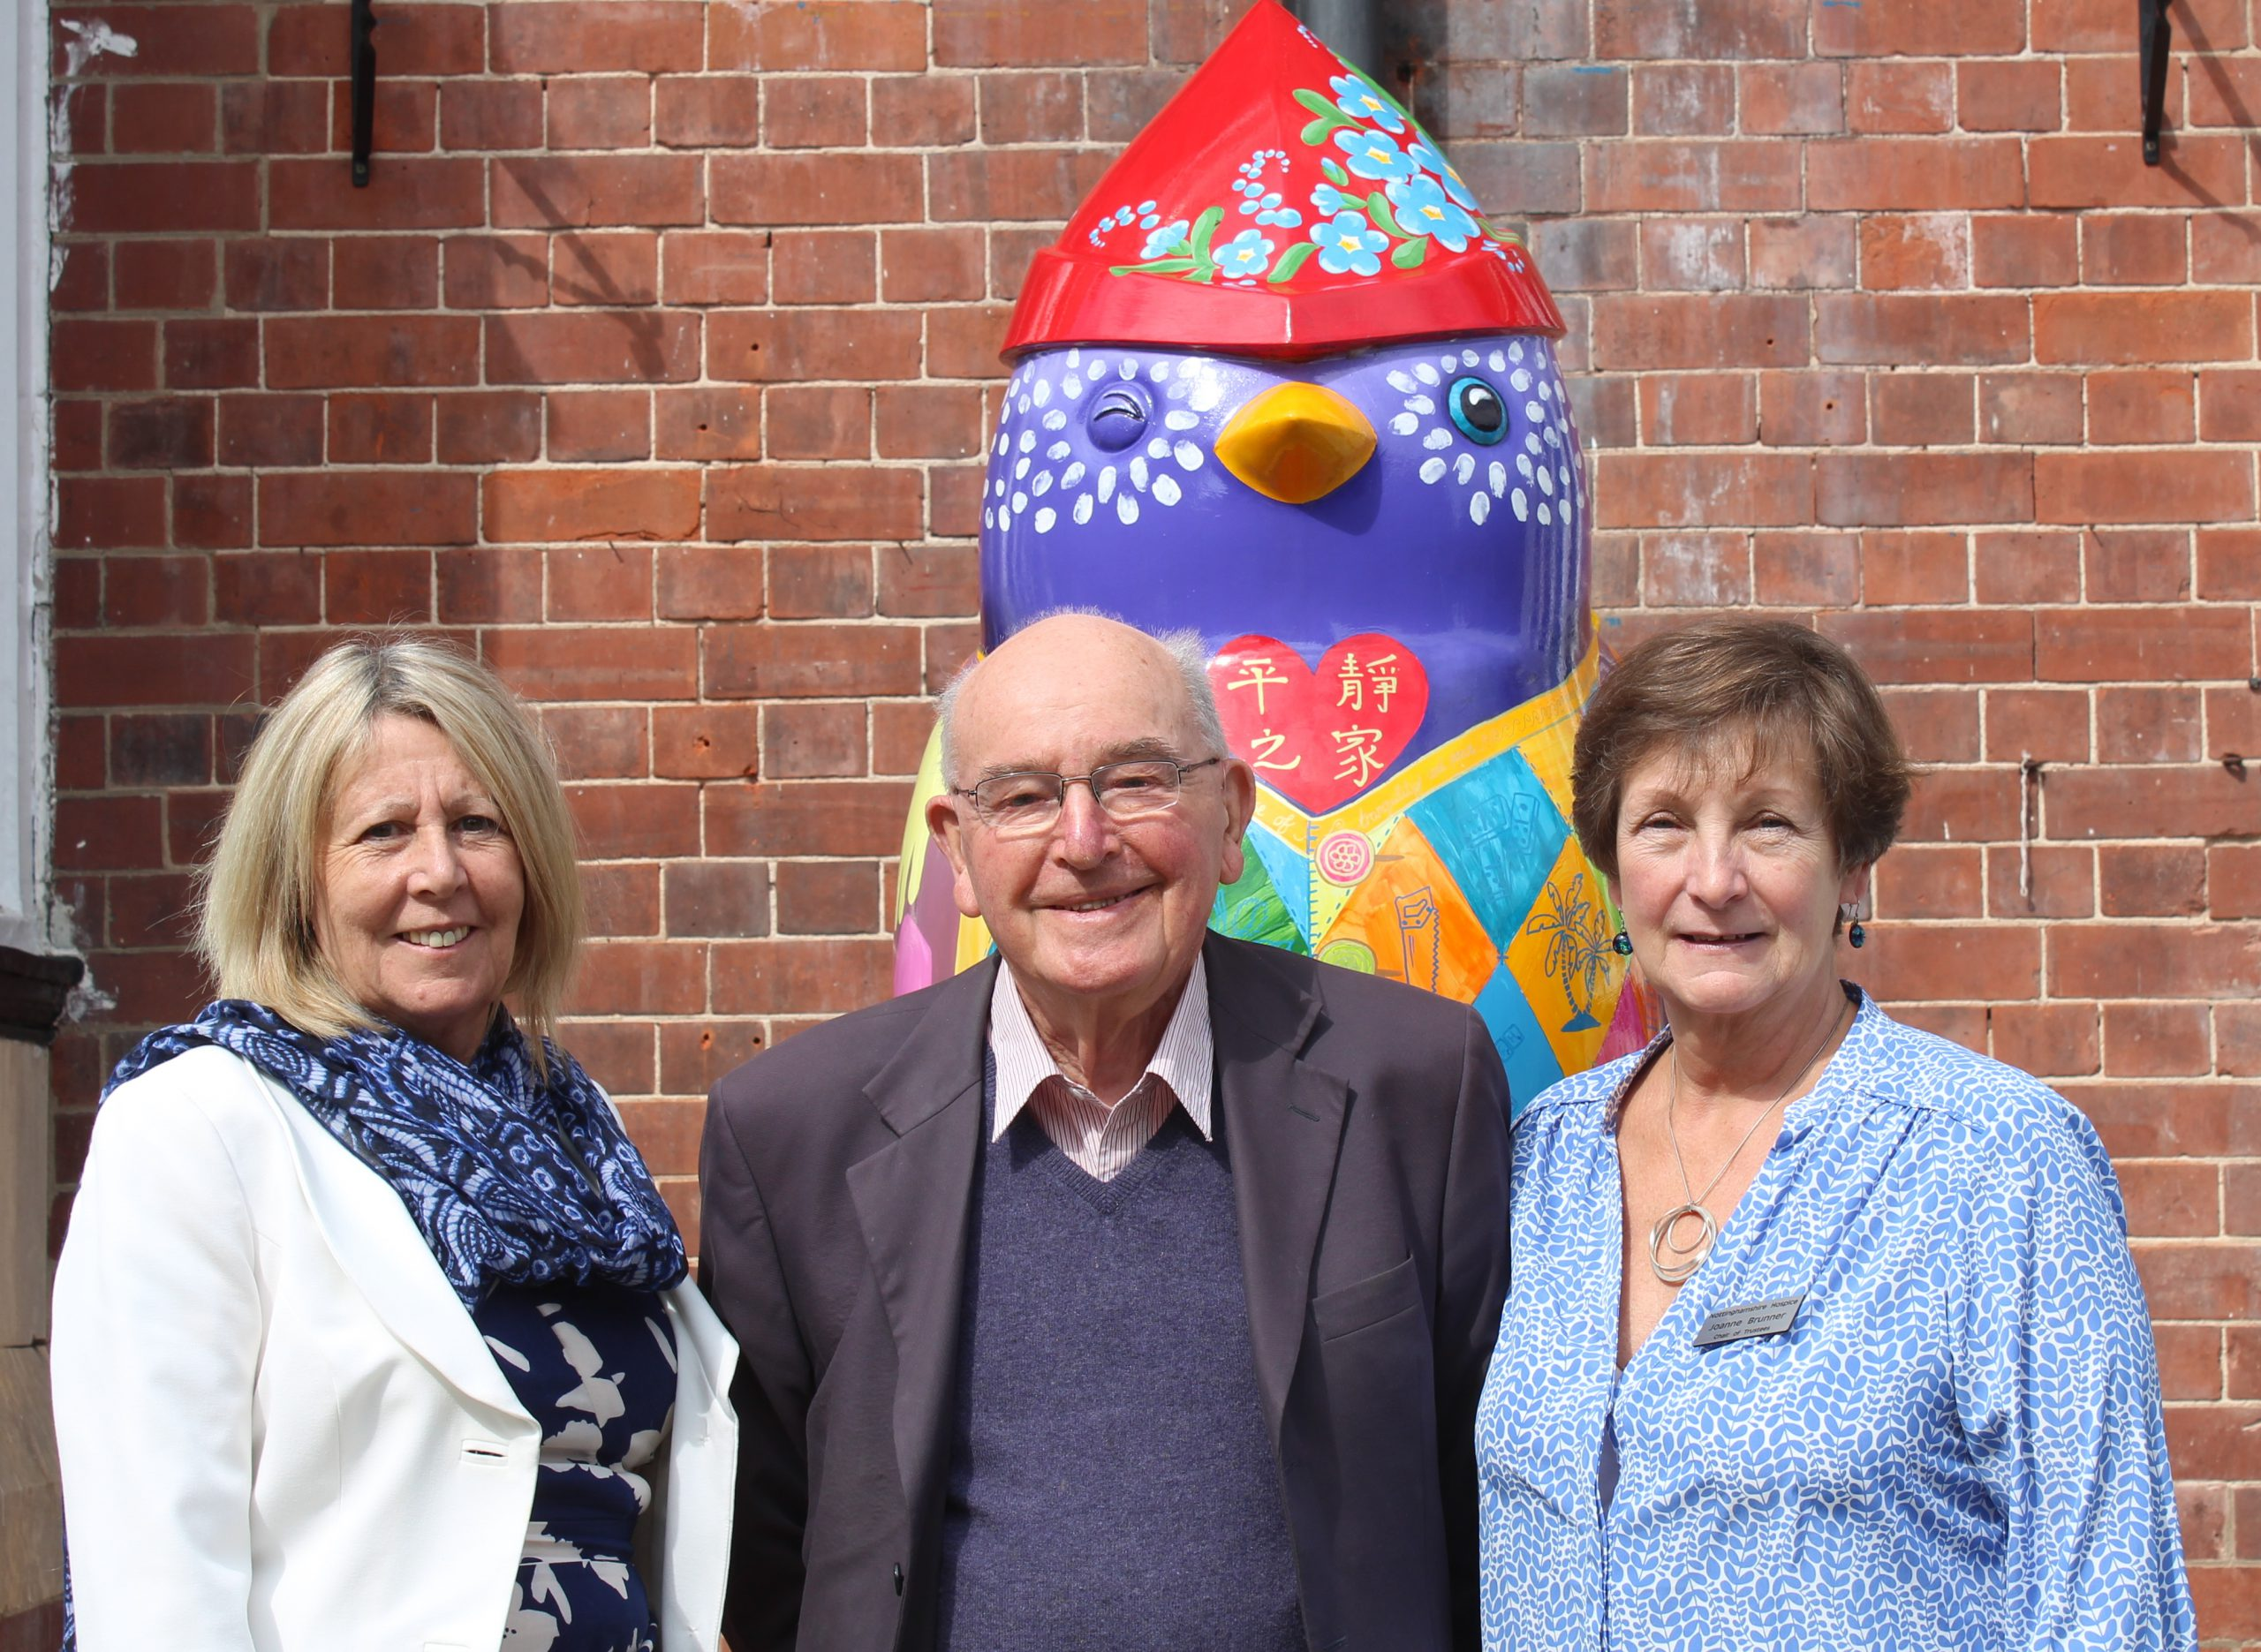 Rowena with Founder Bernard Brady and Chair of Trustees Joanne Brunner